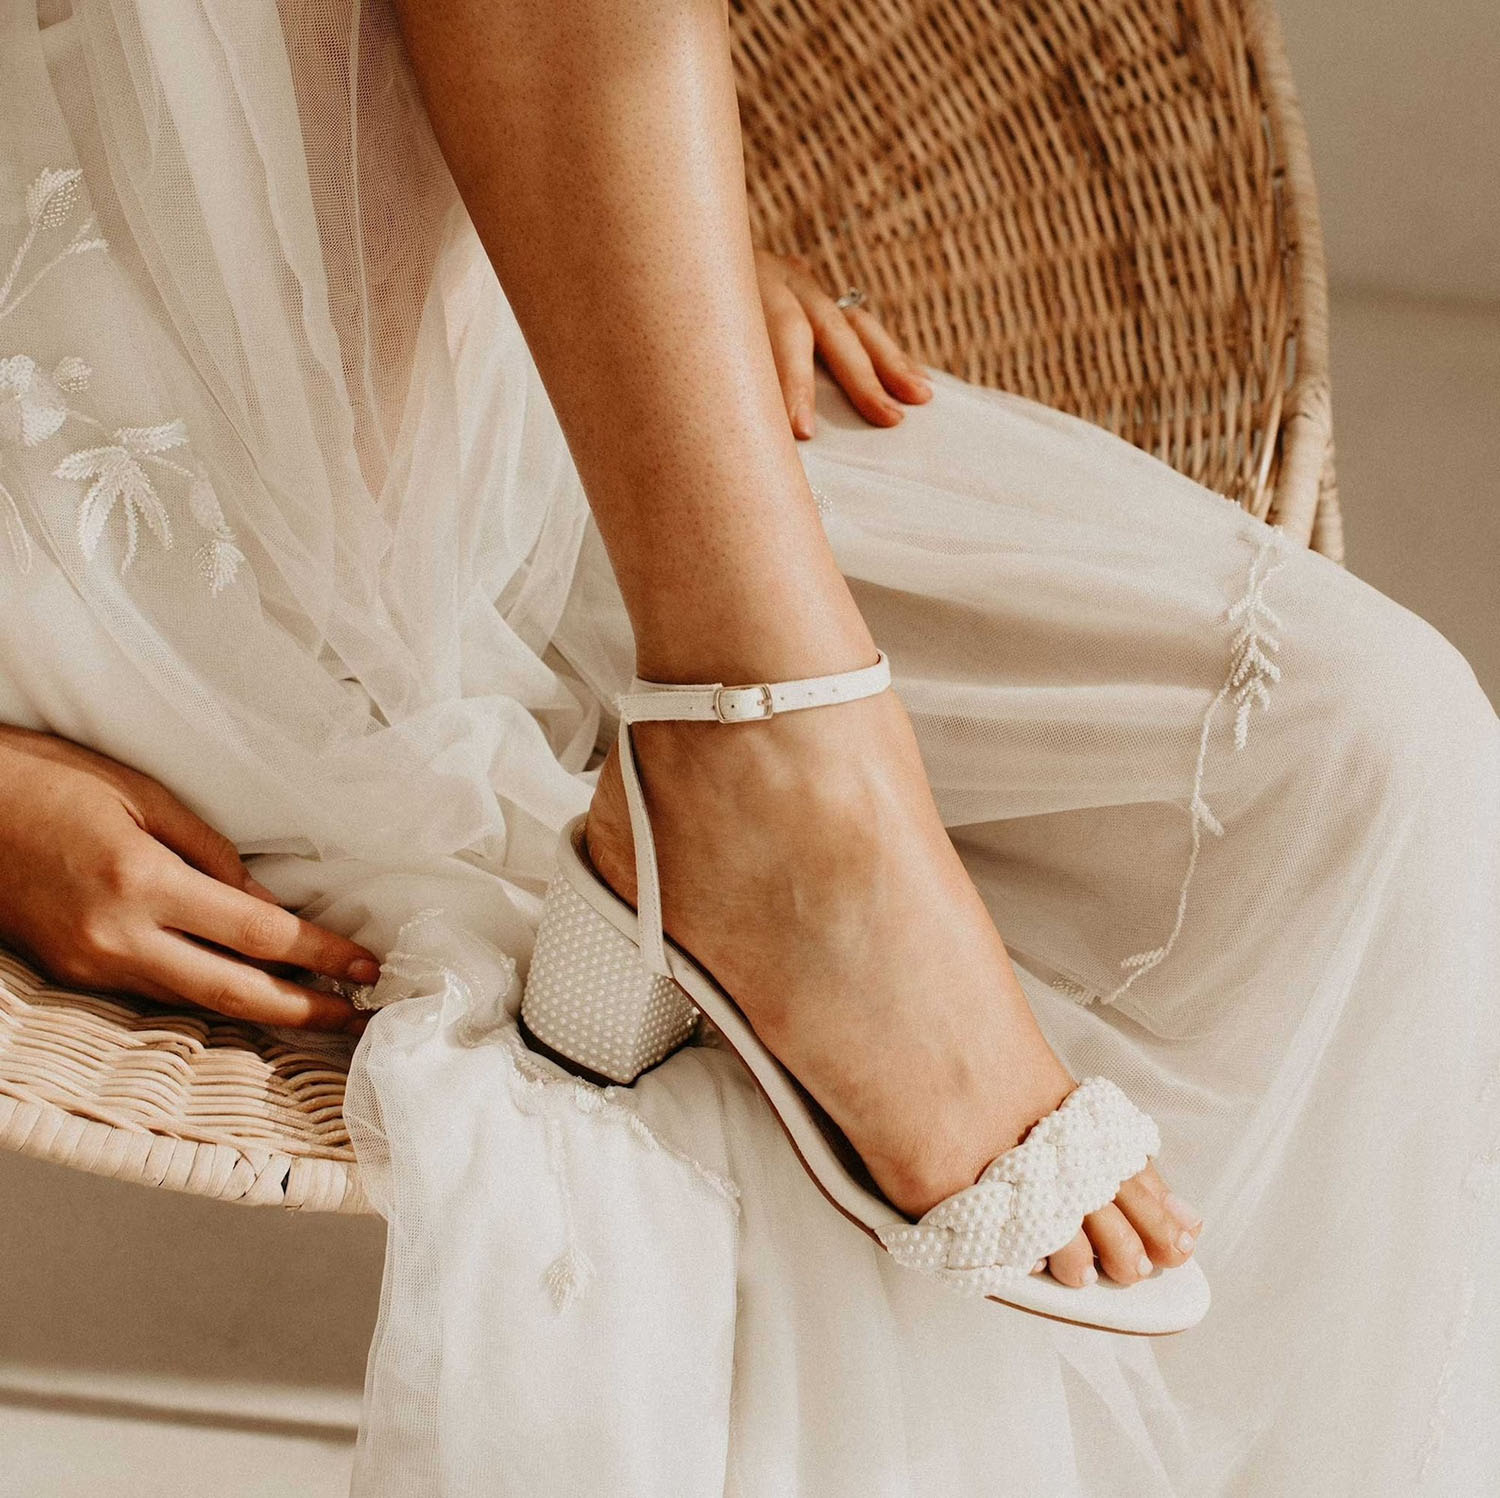 braided strap pearl wedding heels from Forever Soles